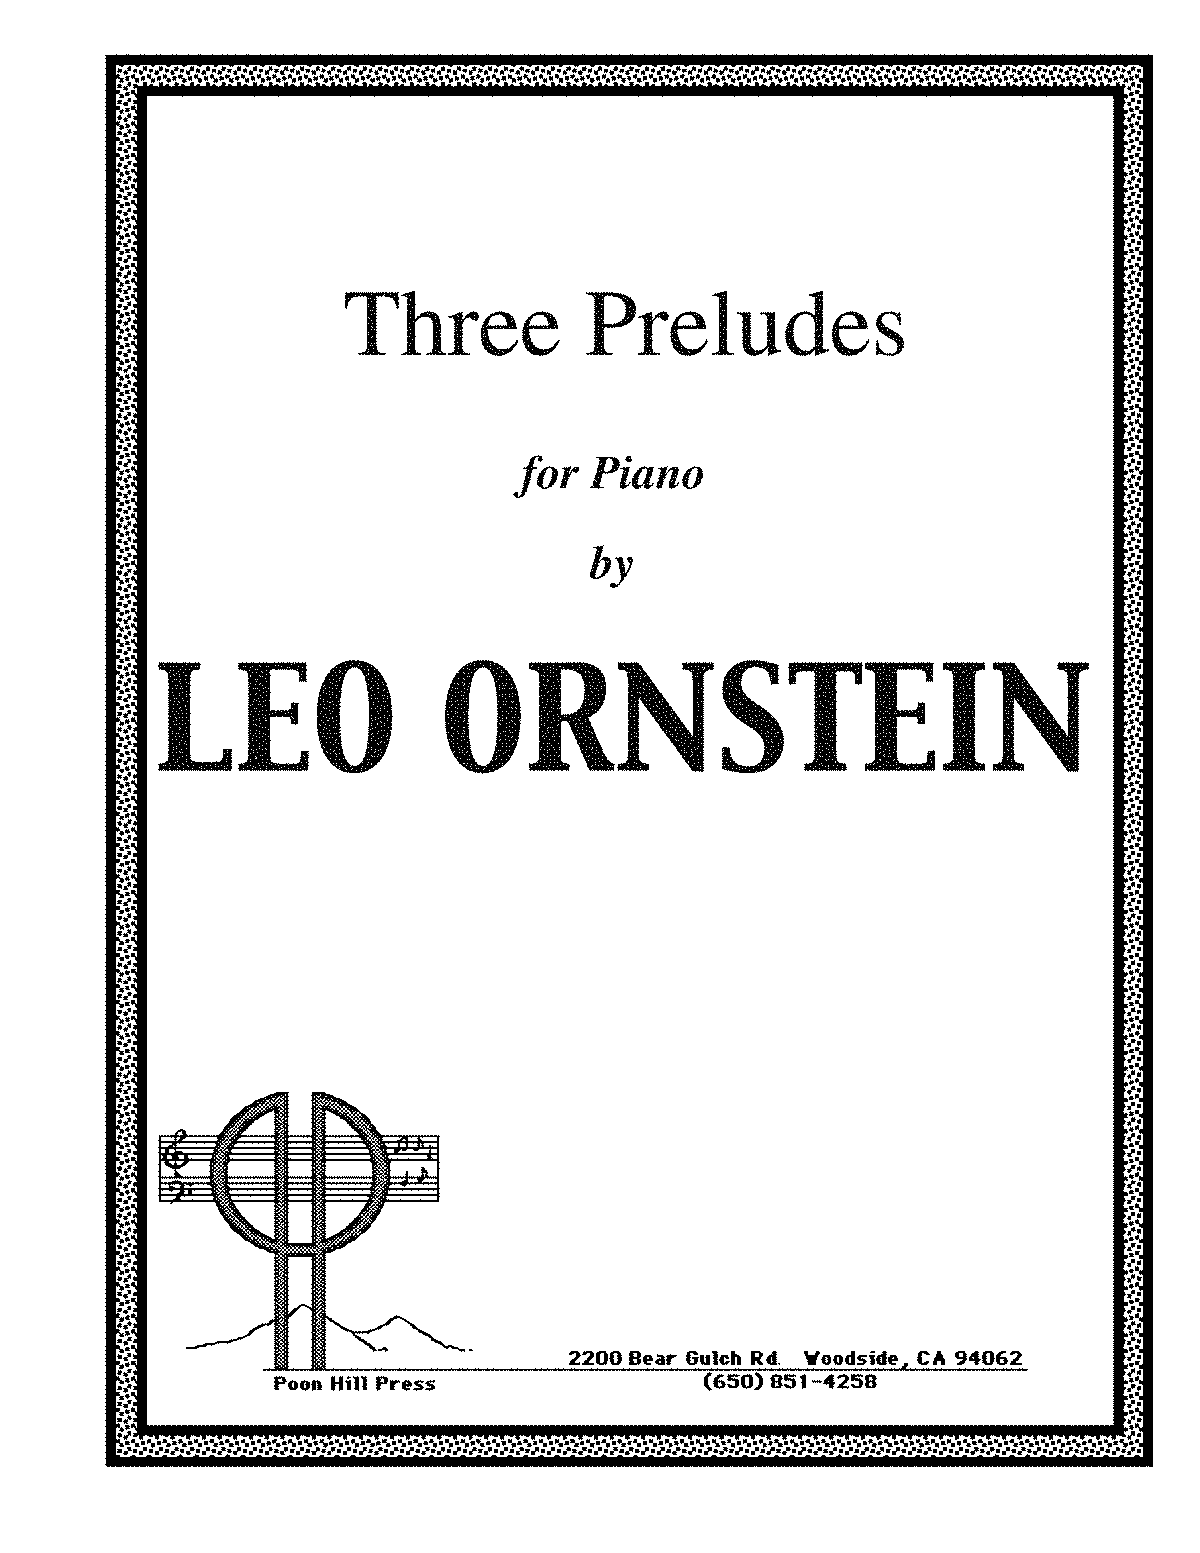 01 S057 - Three PreludesS057 - Three Preludes.pdf